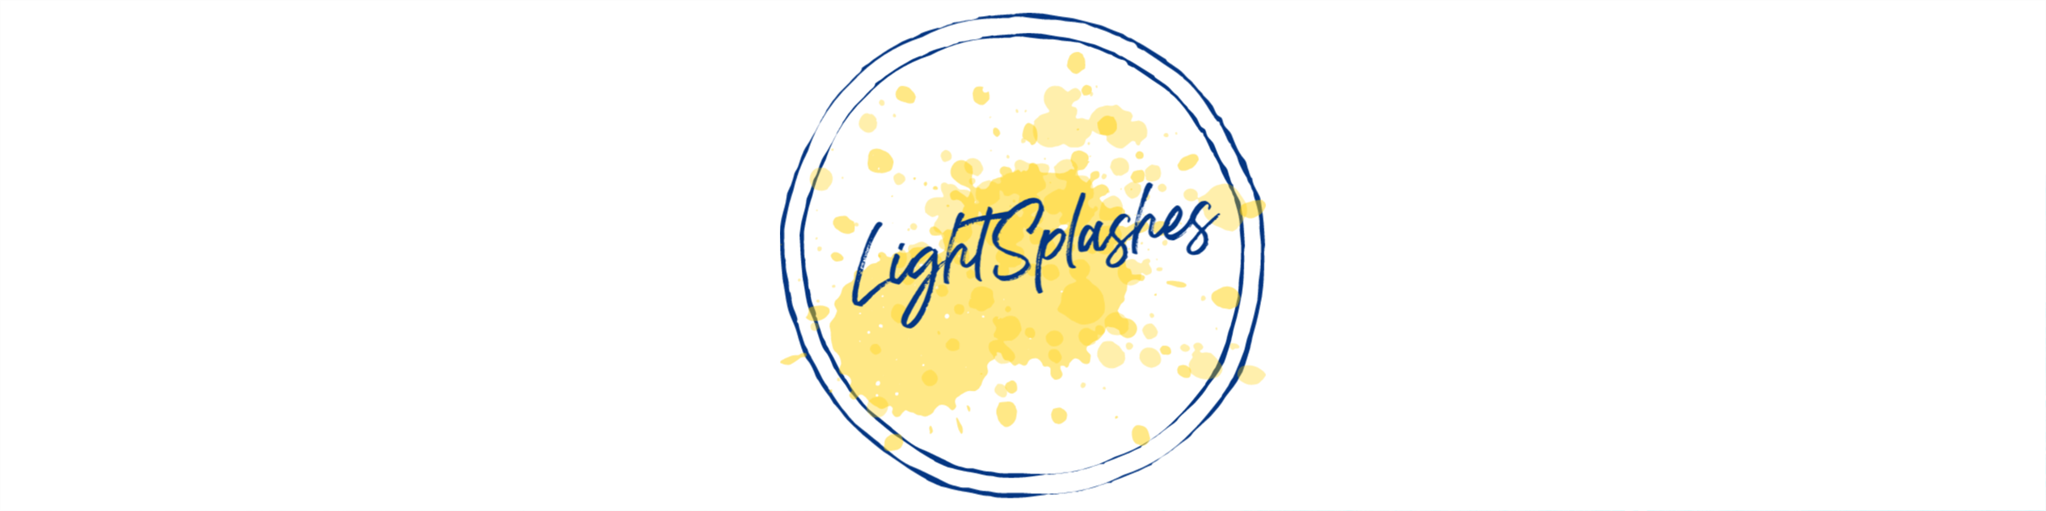 LightSplashes